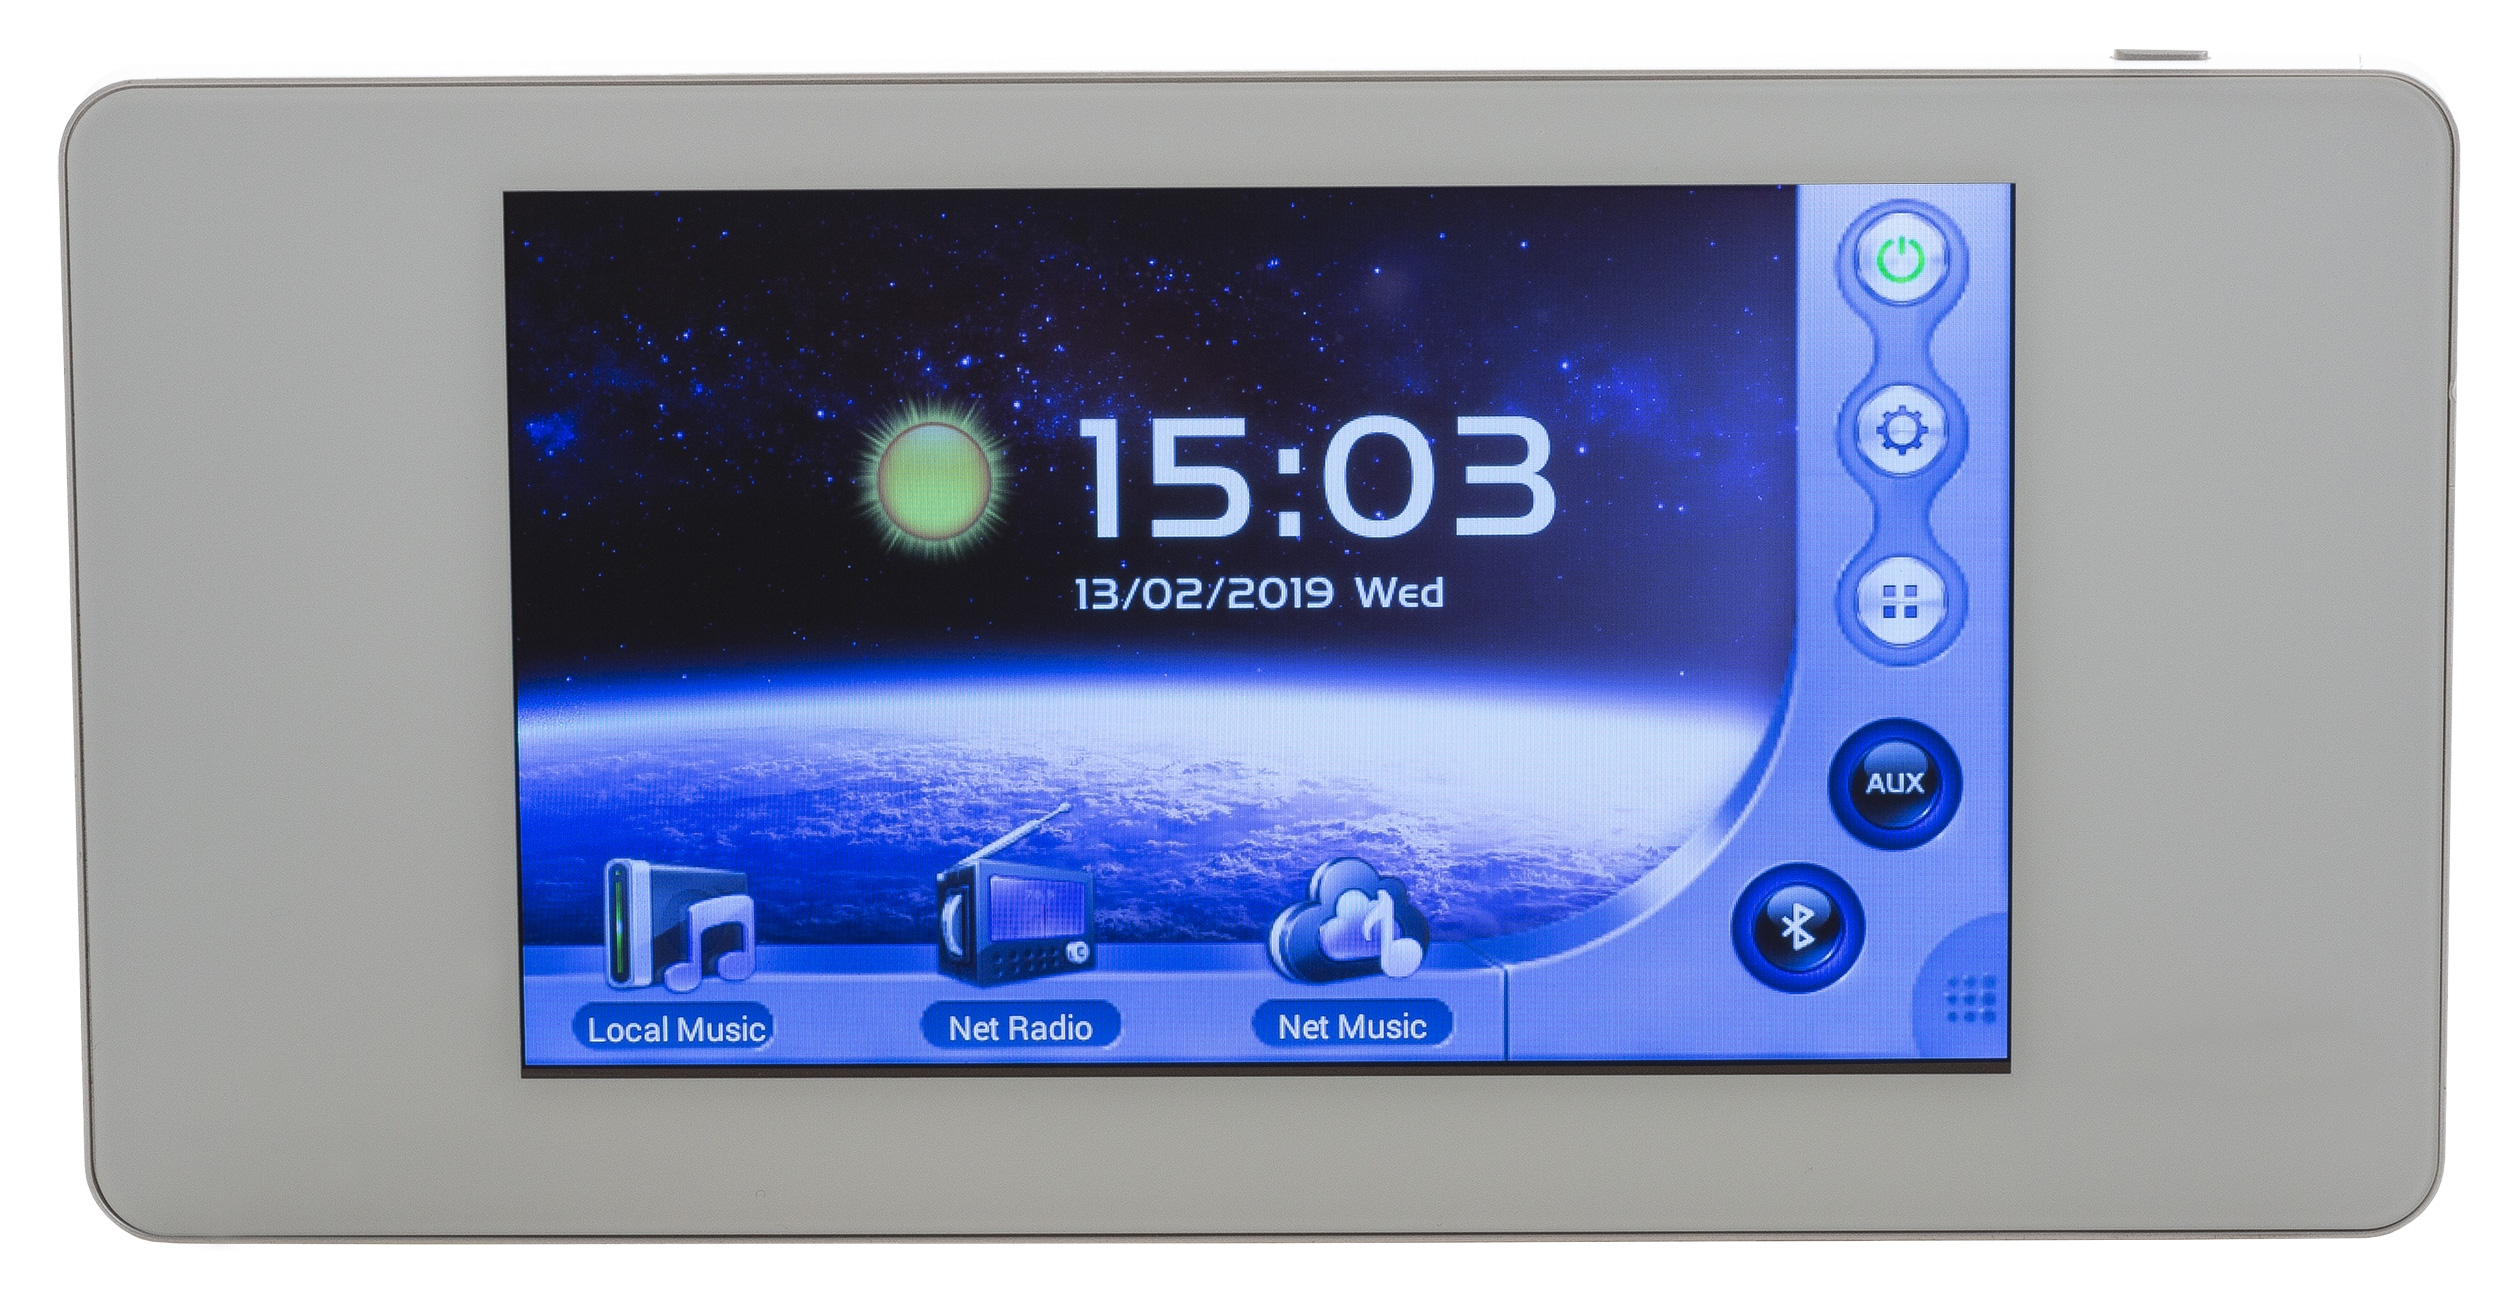 2x20W wall-mounted amplifier with SD, BLUETOOTH, AUX, DLNA, Airplay & App with touch screen